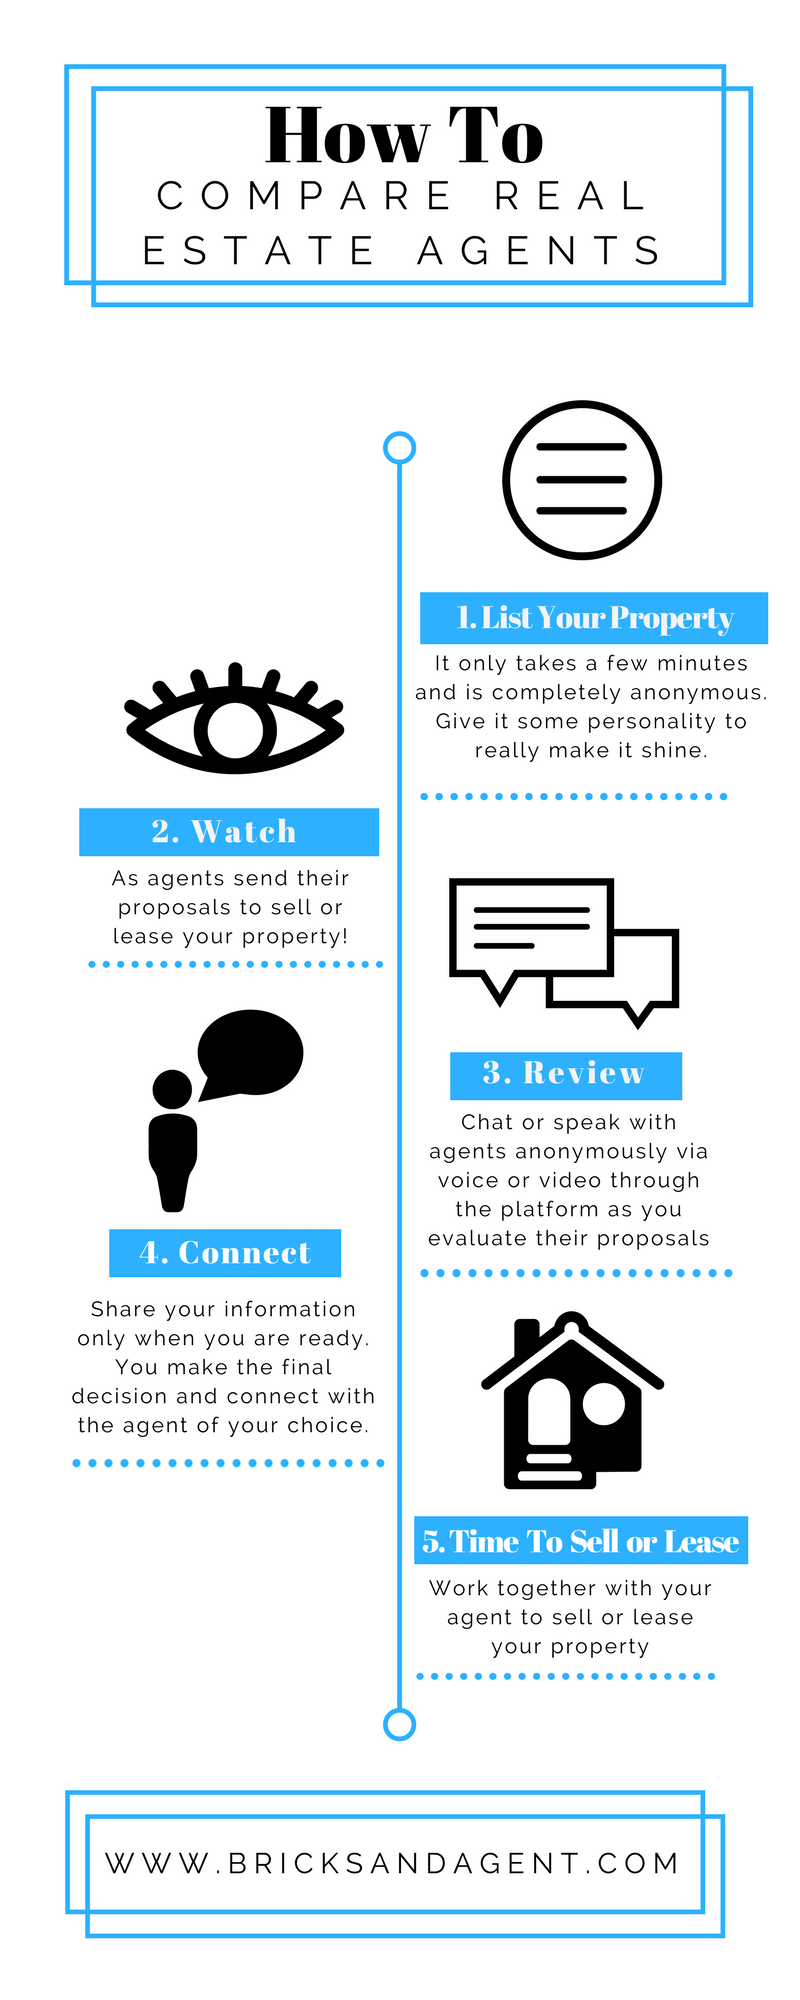 comparing real estate agents infographic